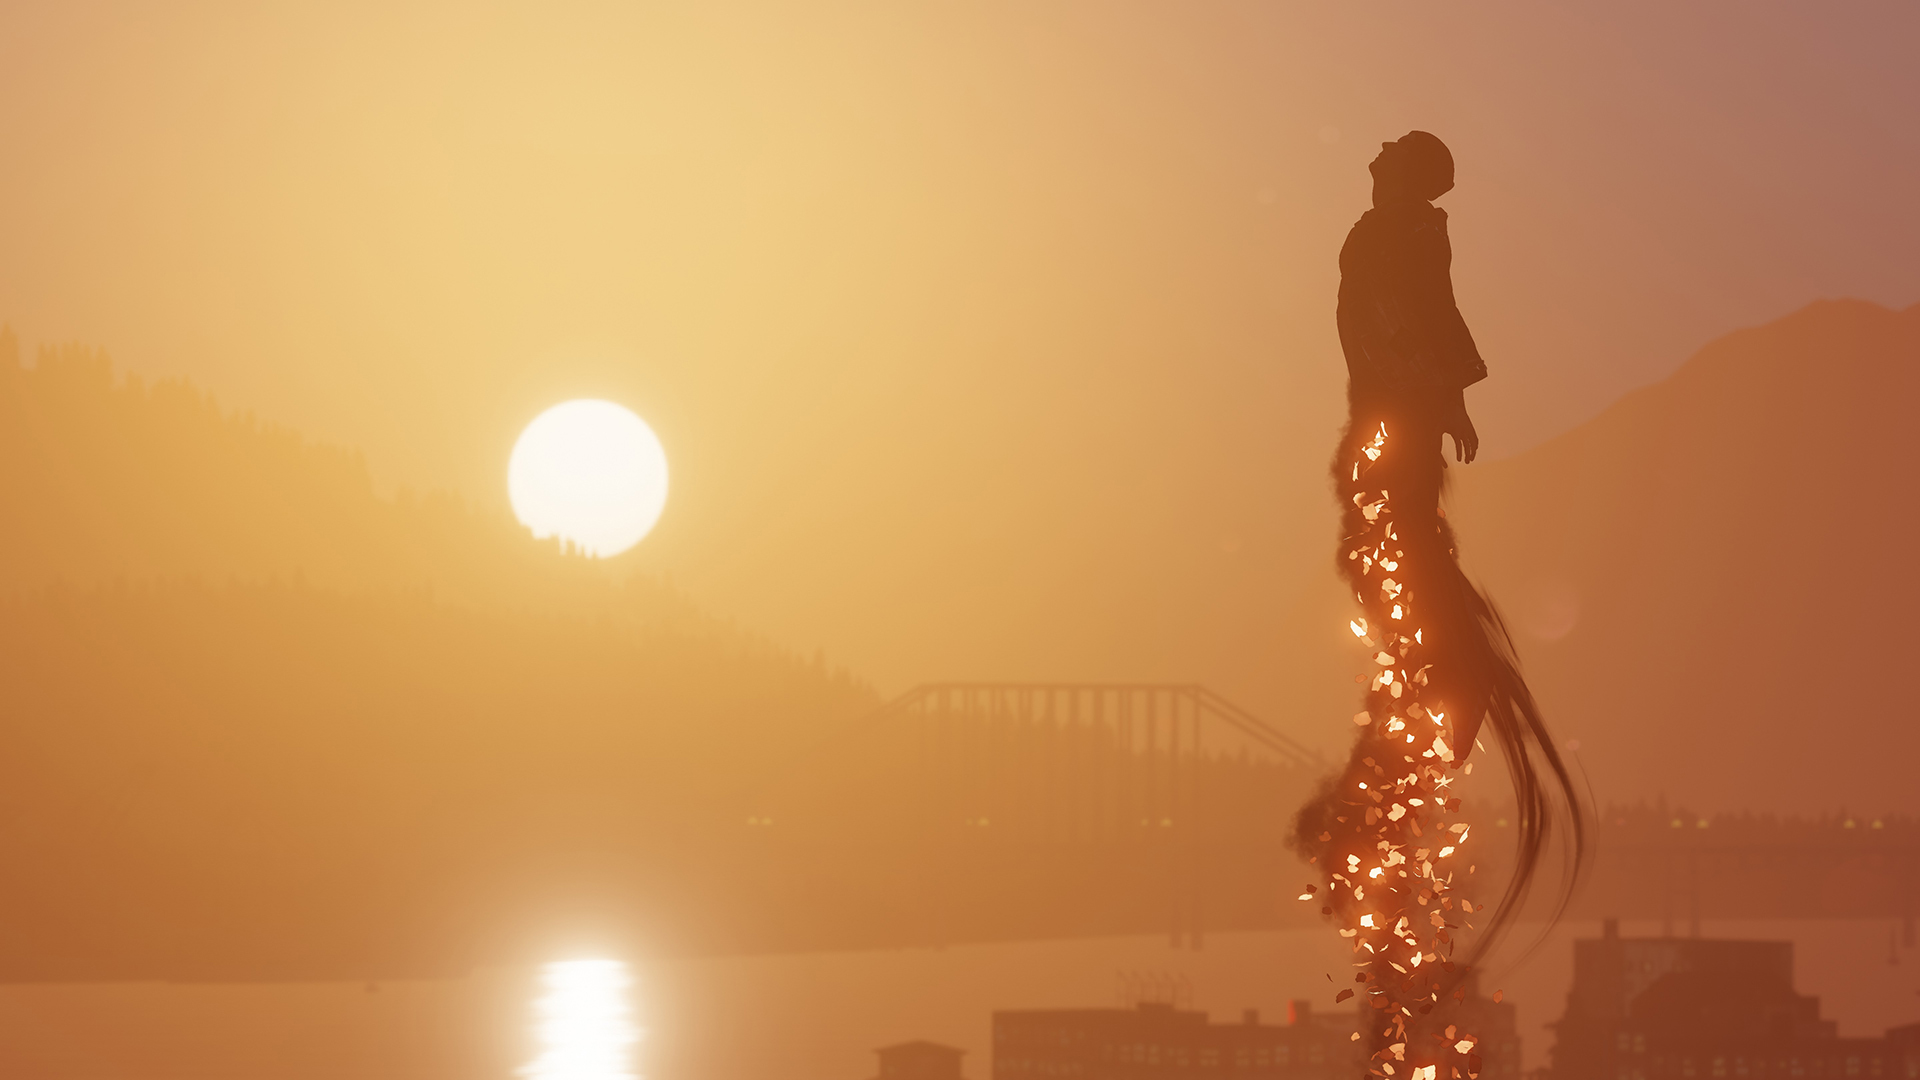 infamous second son backgrounds